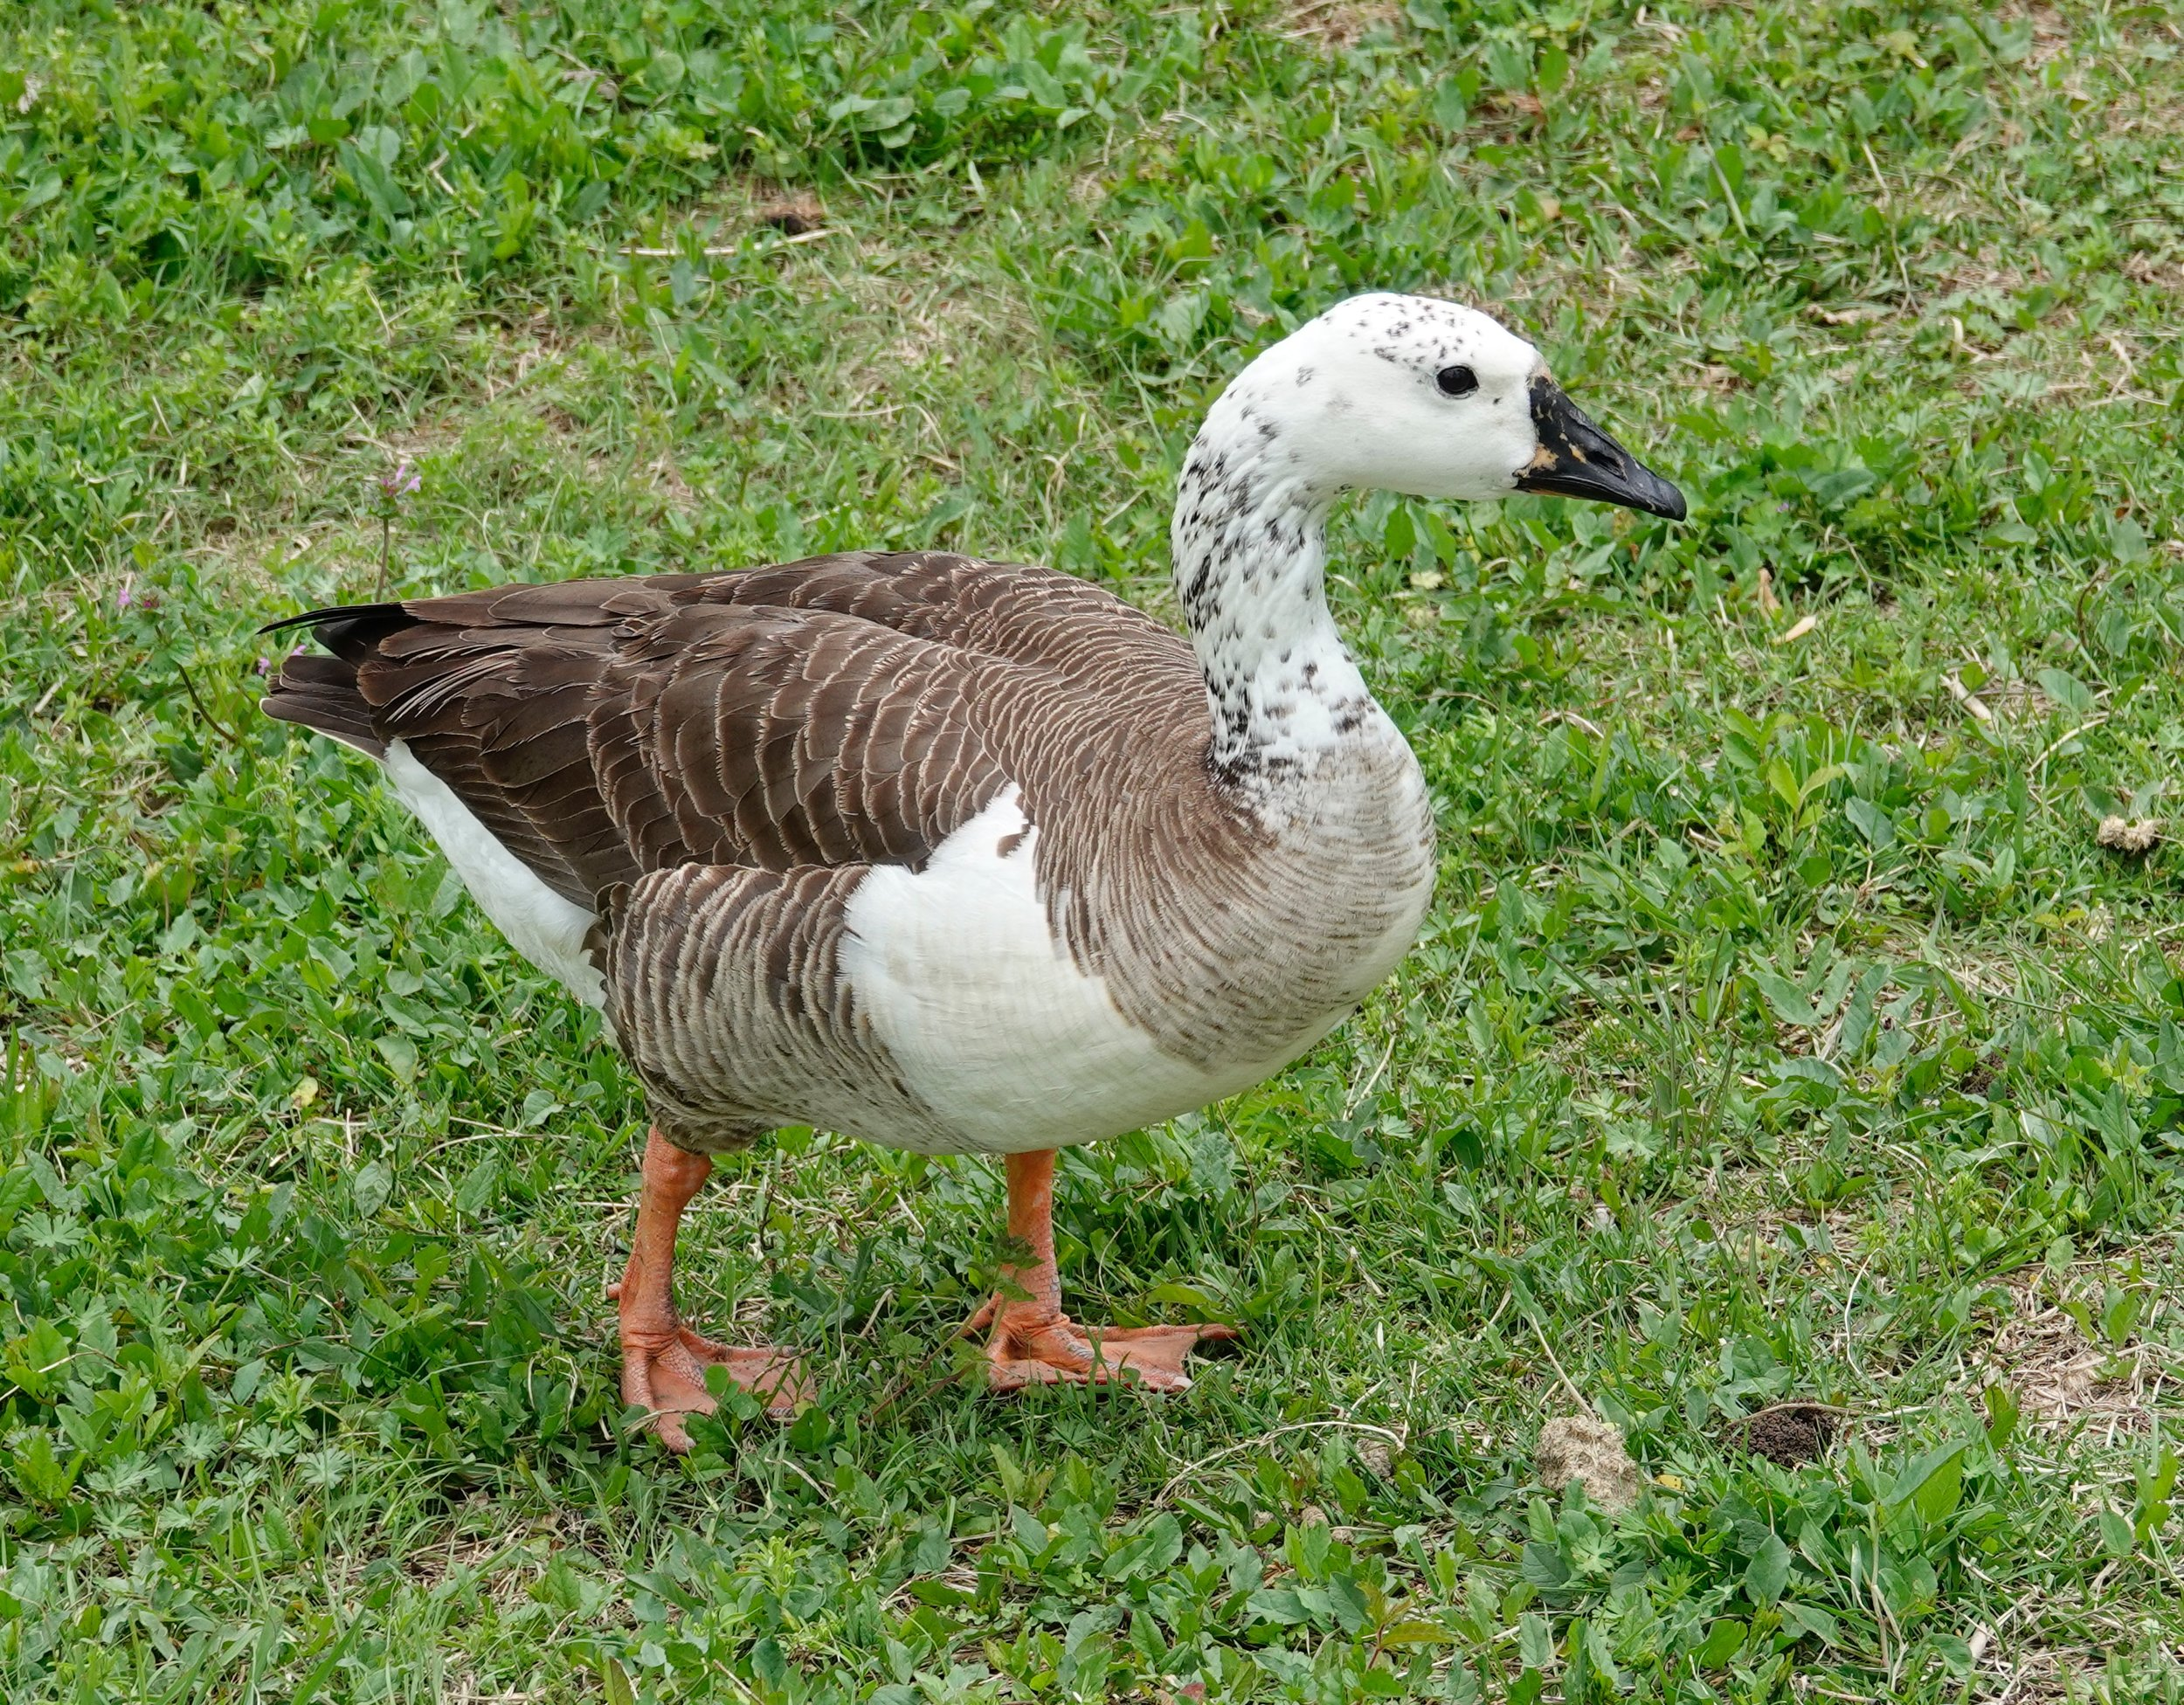 This hybrid is paired up with a Canada goose.